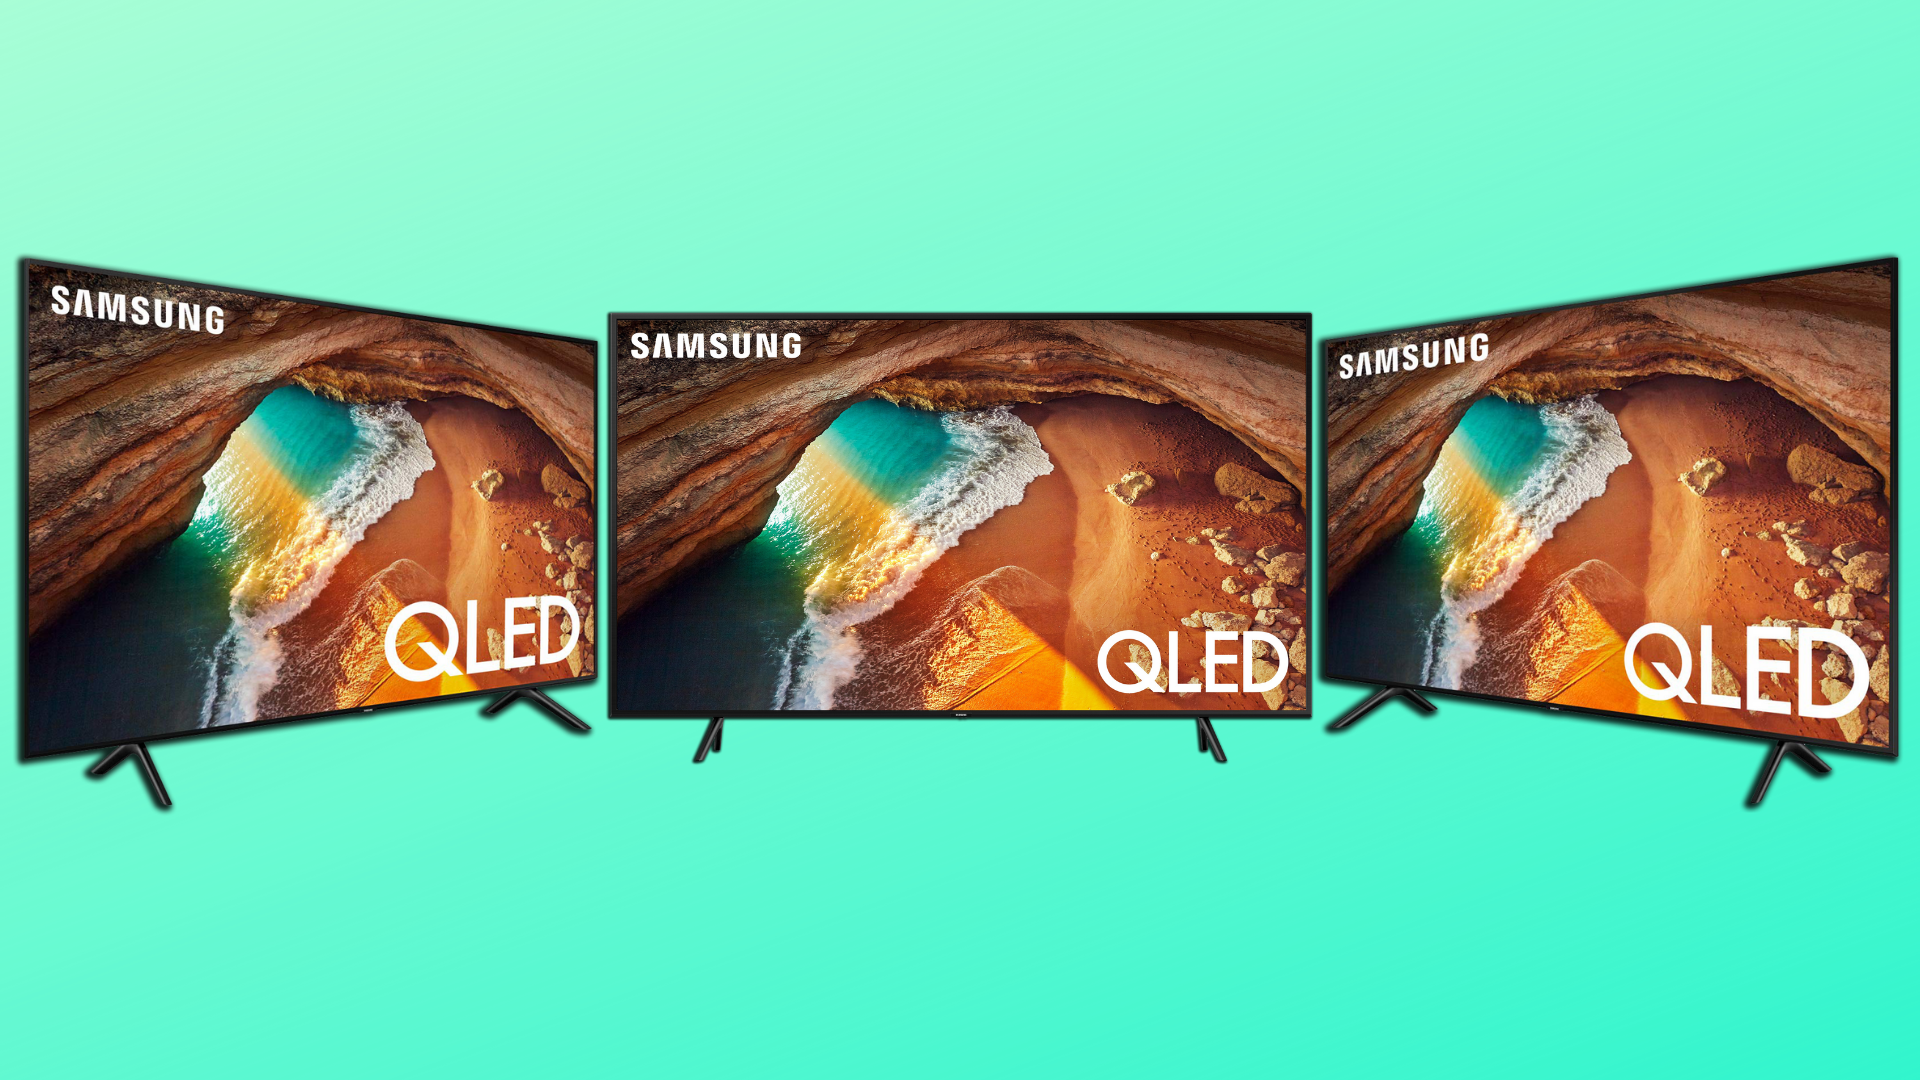 Samsung 65-inch QLED 4K TV is now on sale at Walmart